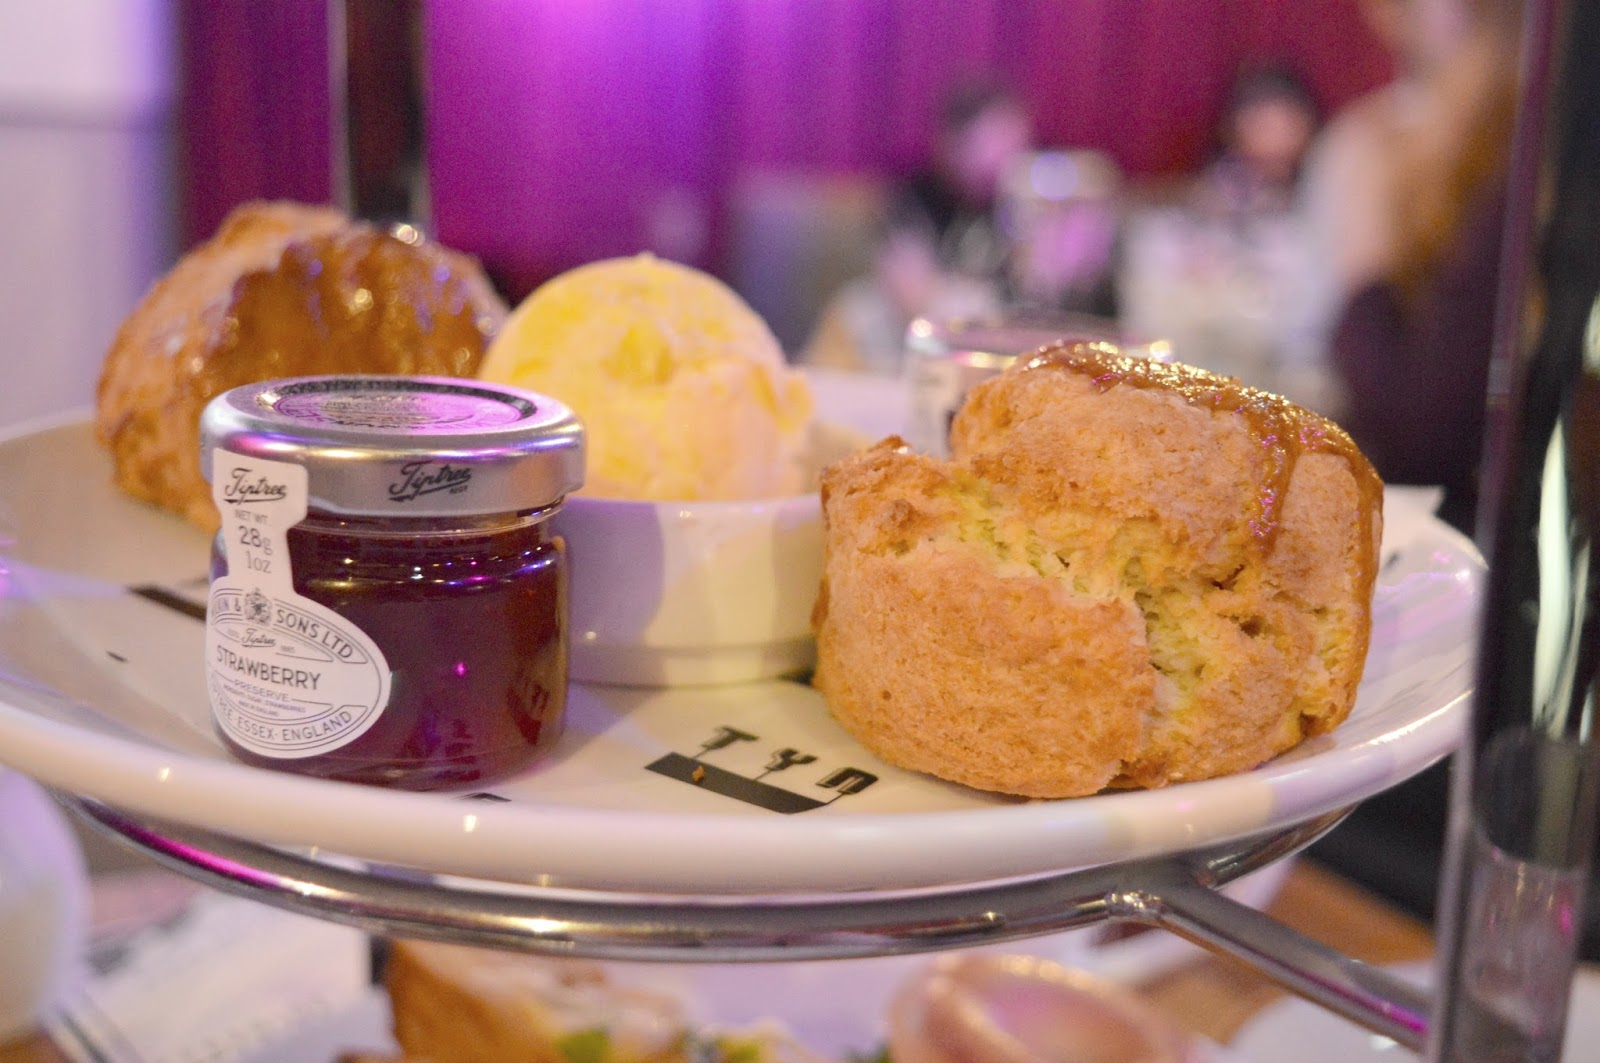 Afternoon Tea at the Movies - Tyneside Cinema